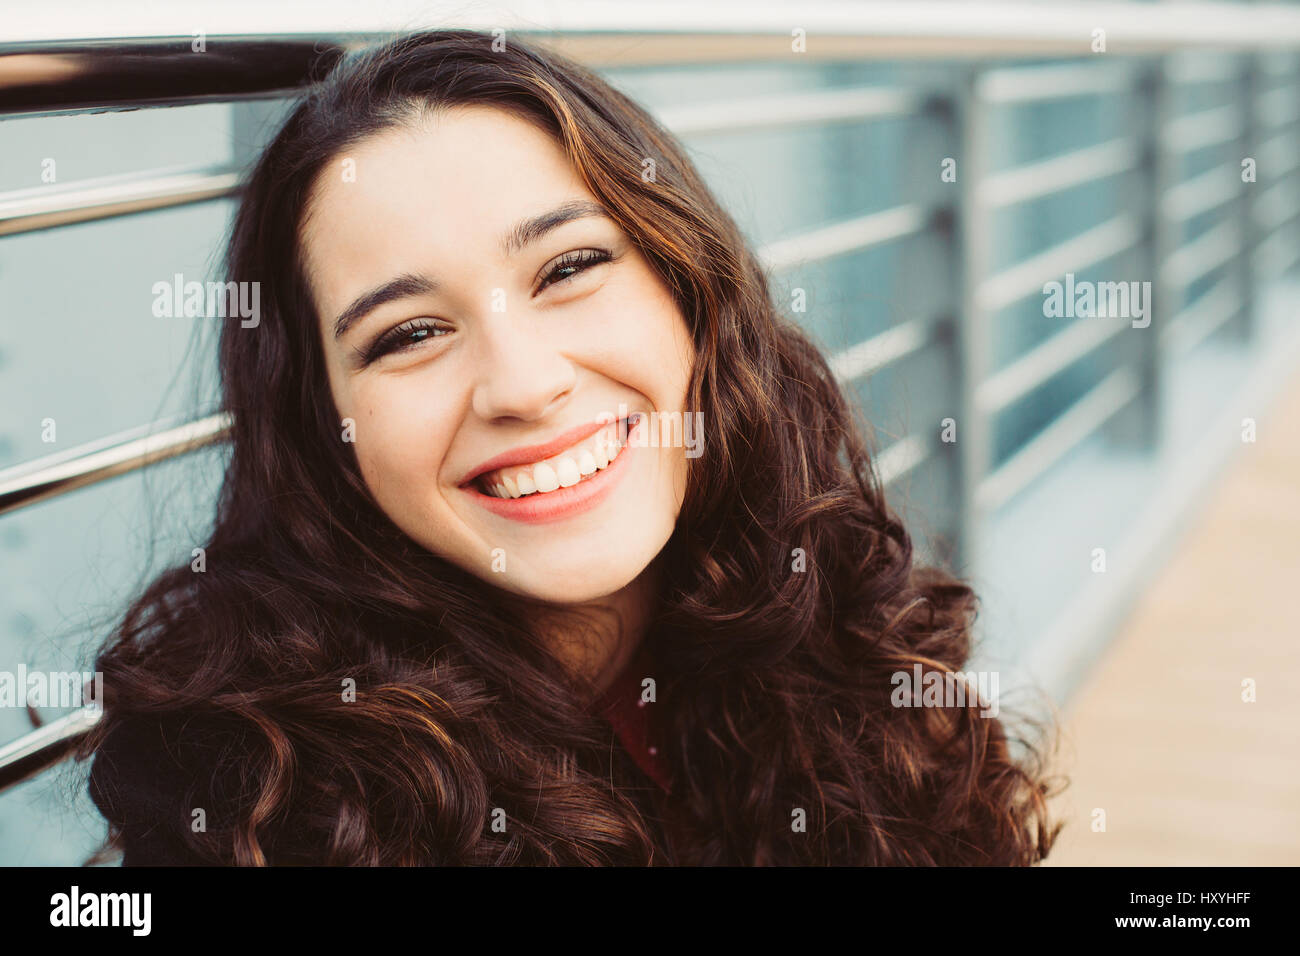 cute brunette woman laughing in the street stock photo: 137060099